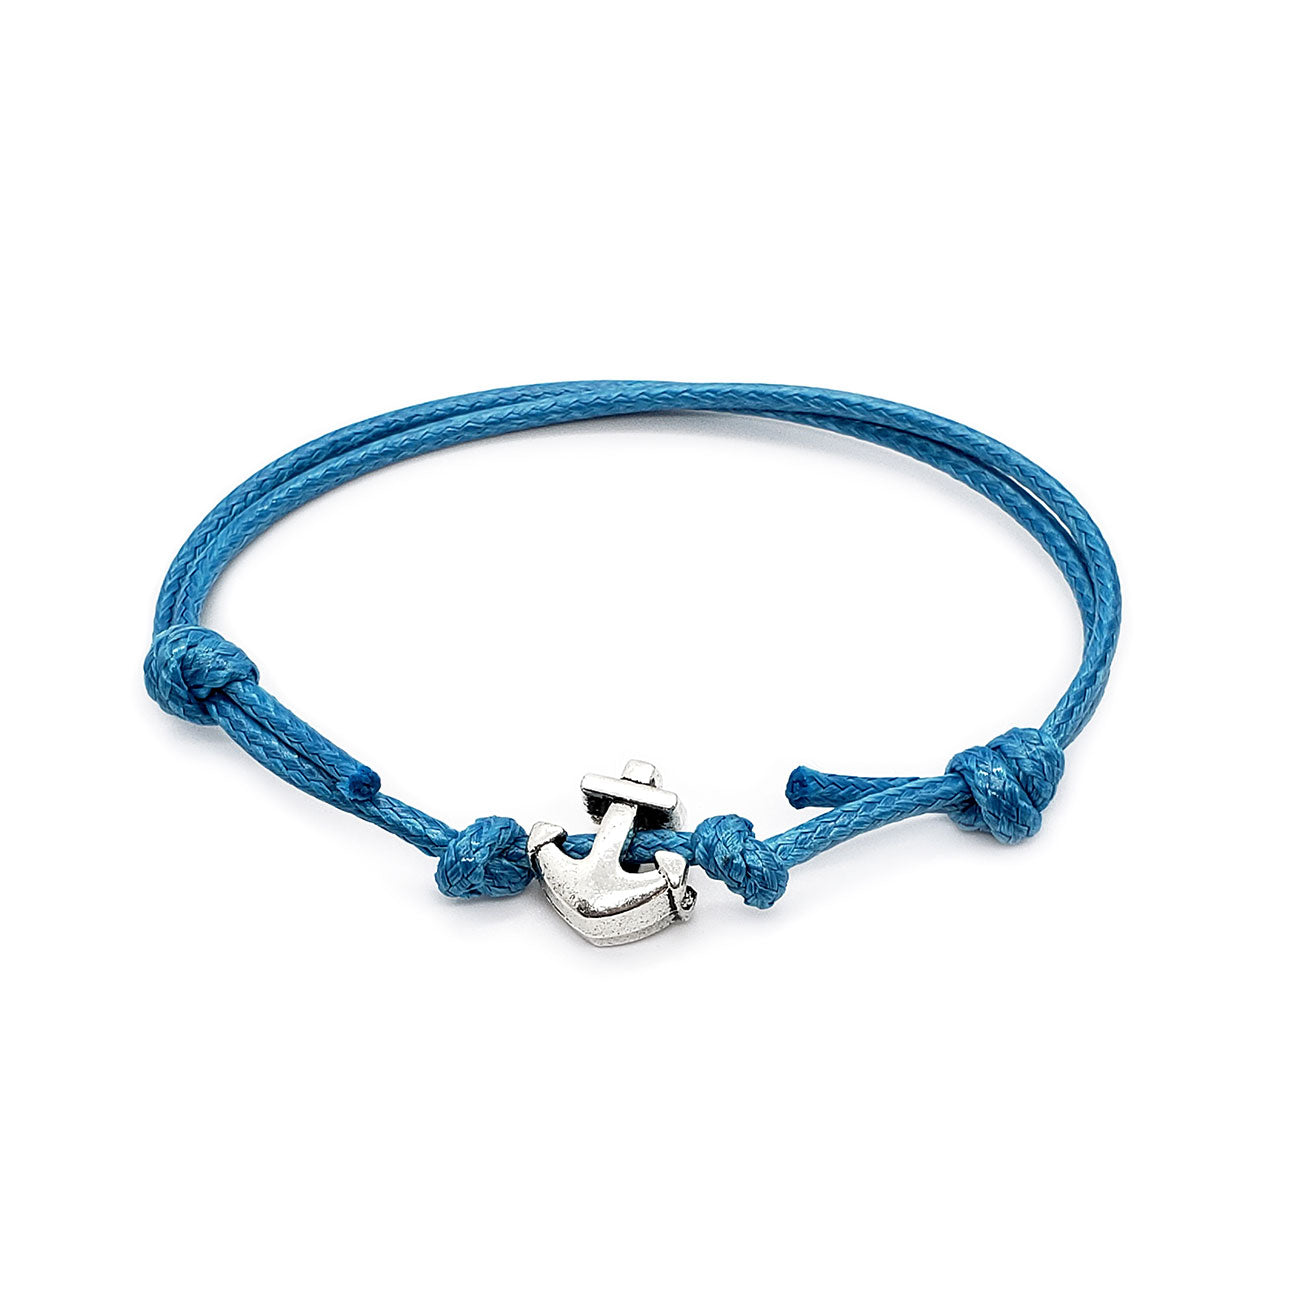 silver anchor charm on adjustable blue cord bracelet